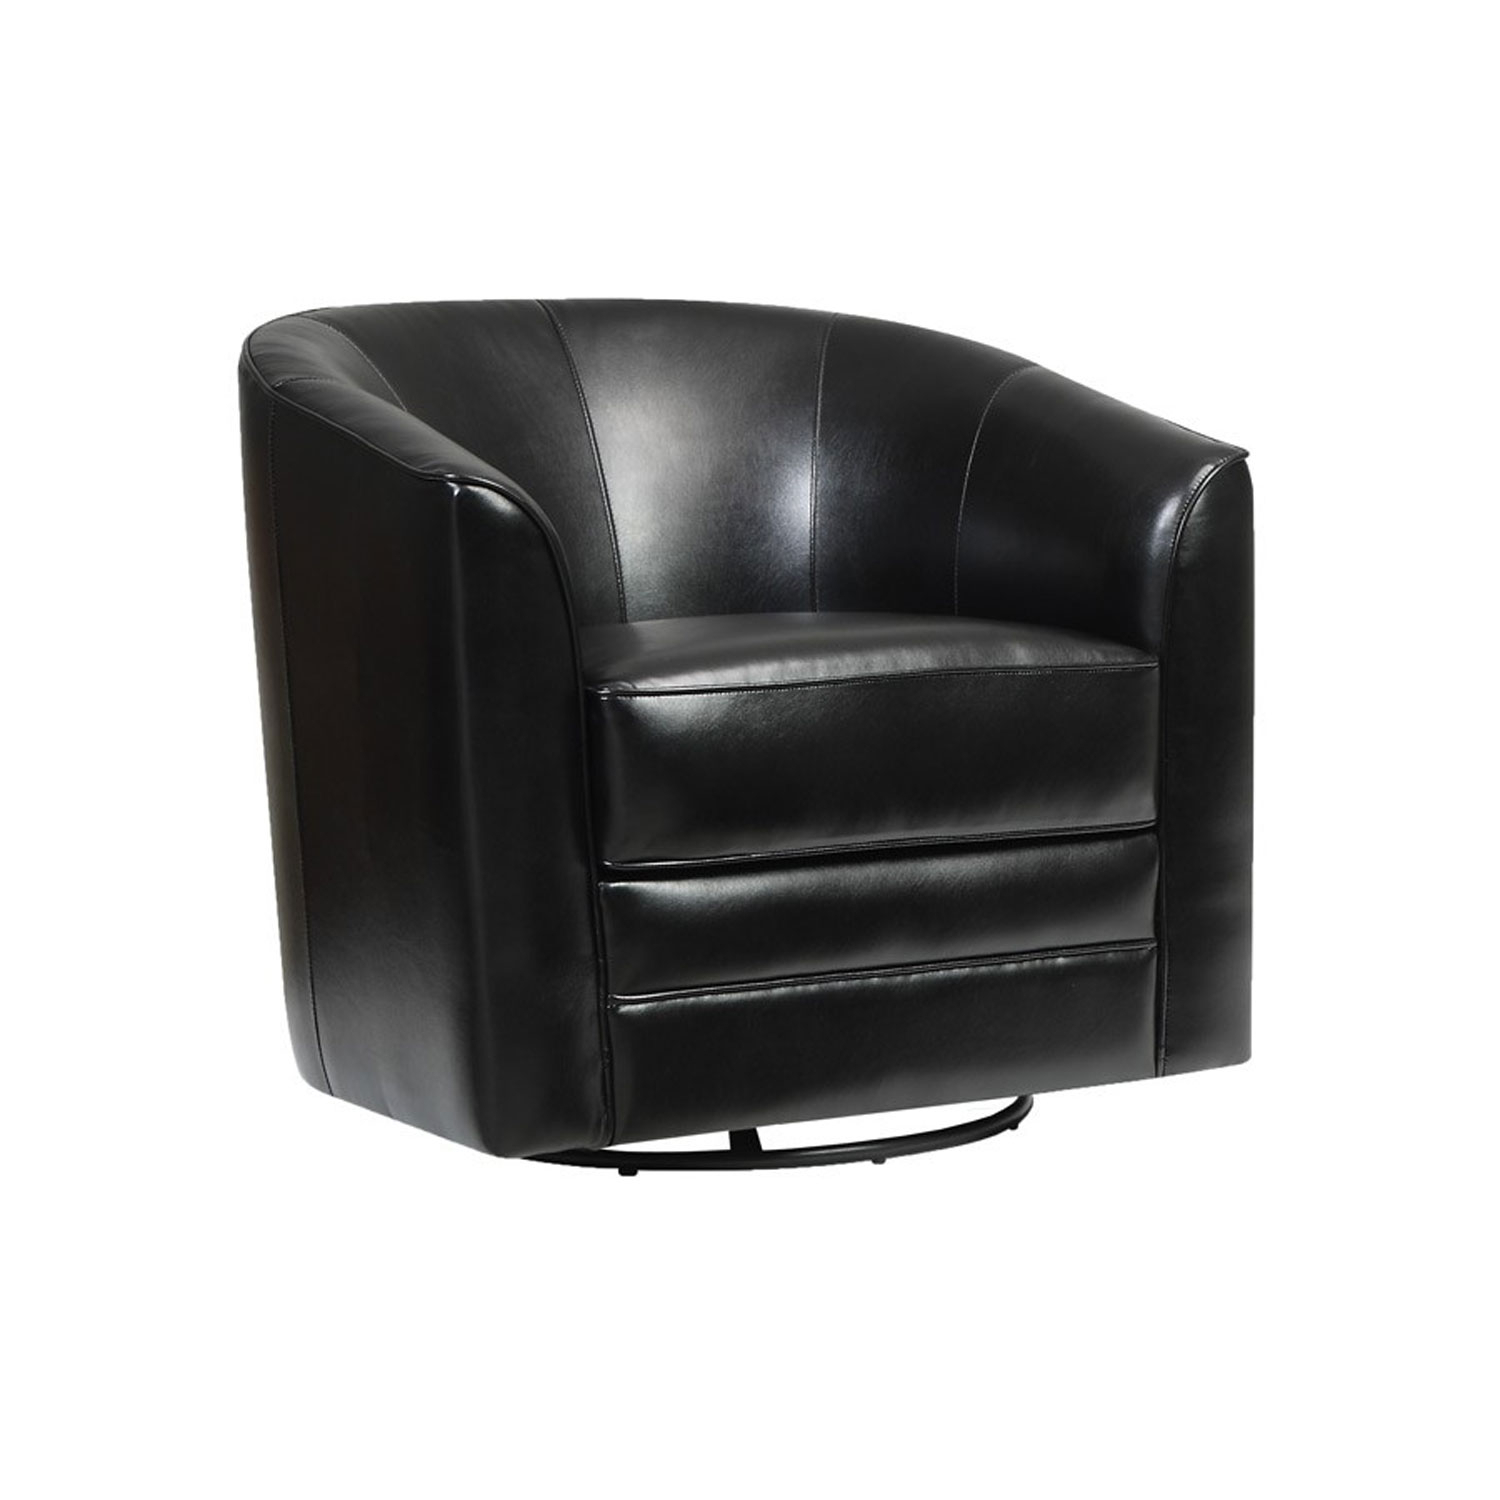 Emerald Home Furnishings Milo Swivel Chair Black U5029C 04 16 | Bellacor With Swivel Tobacco Leather Chairs (Photo 19 of 25)